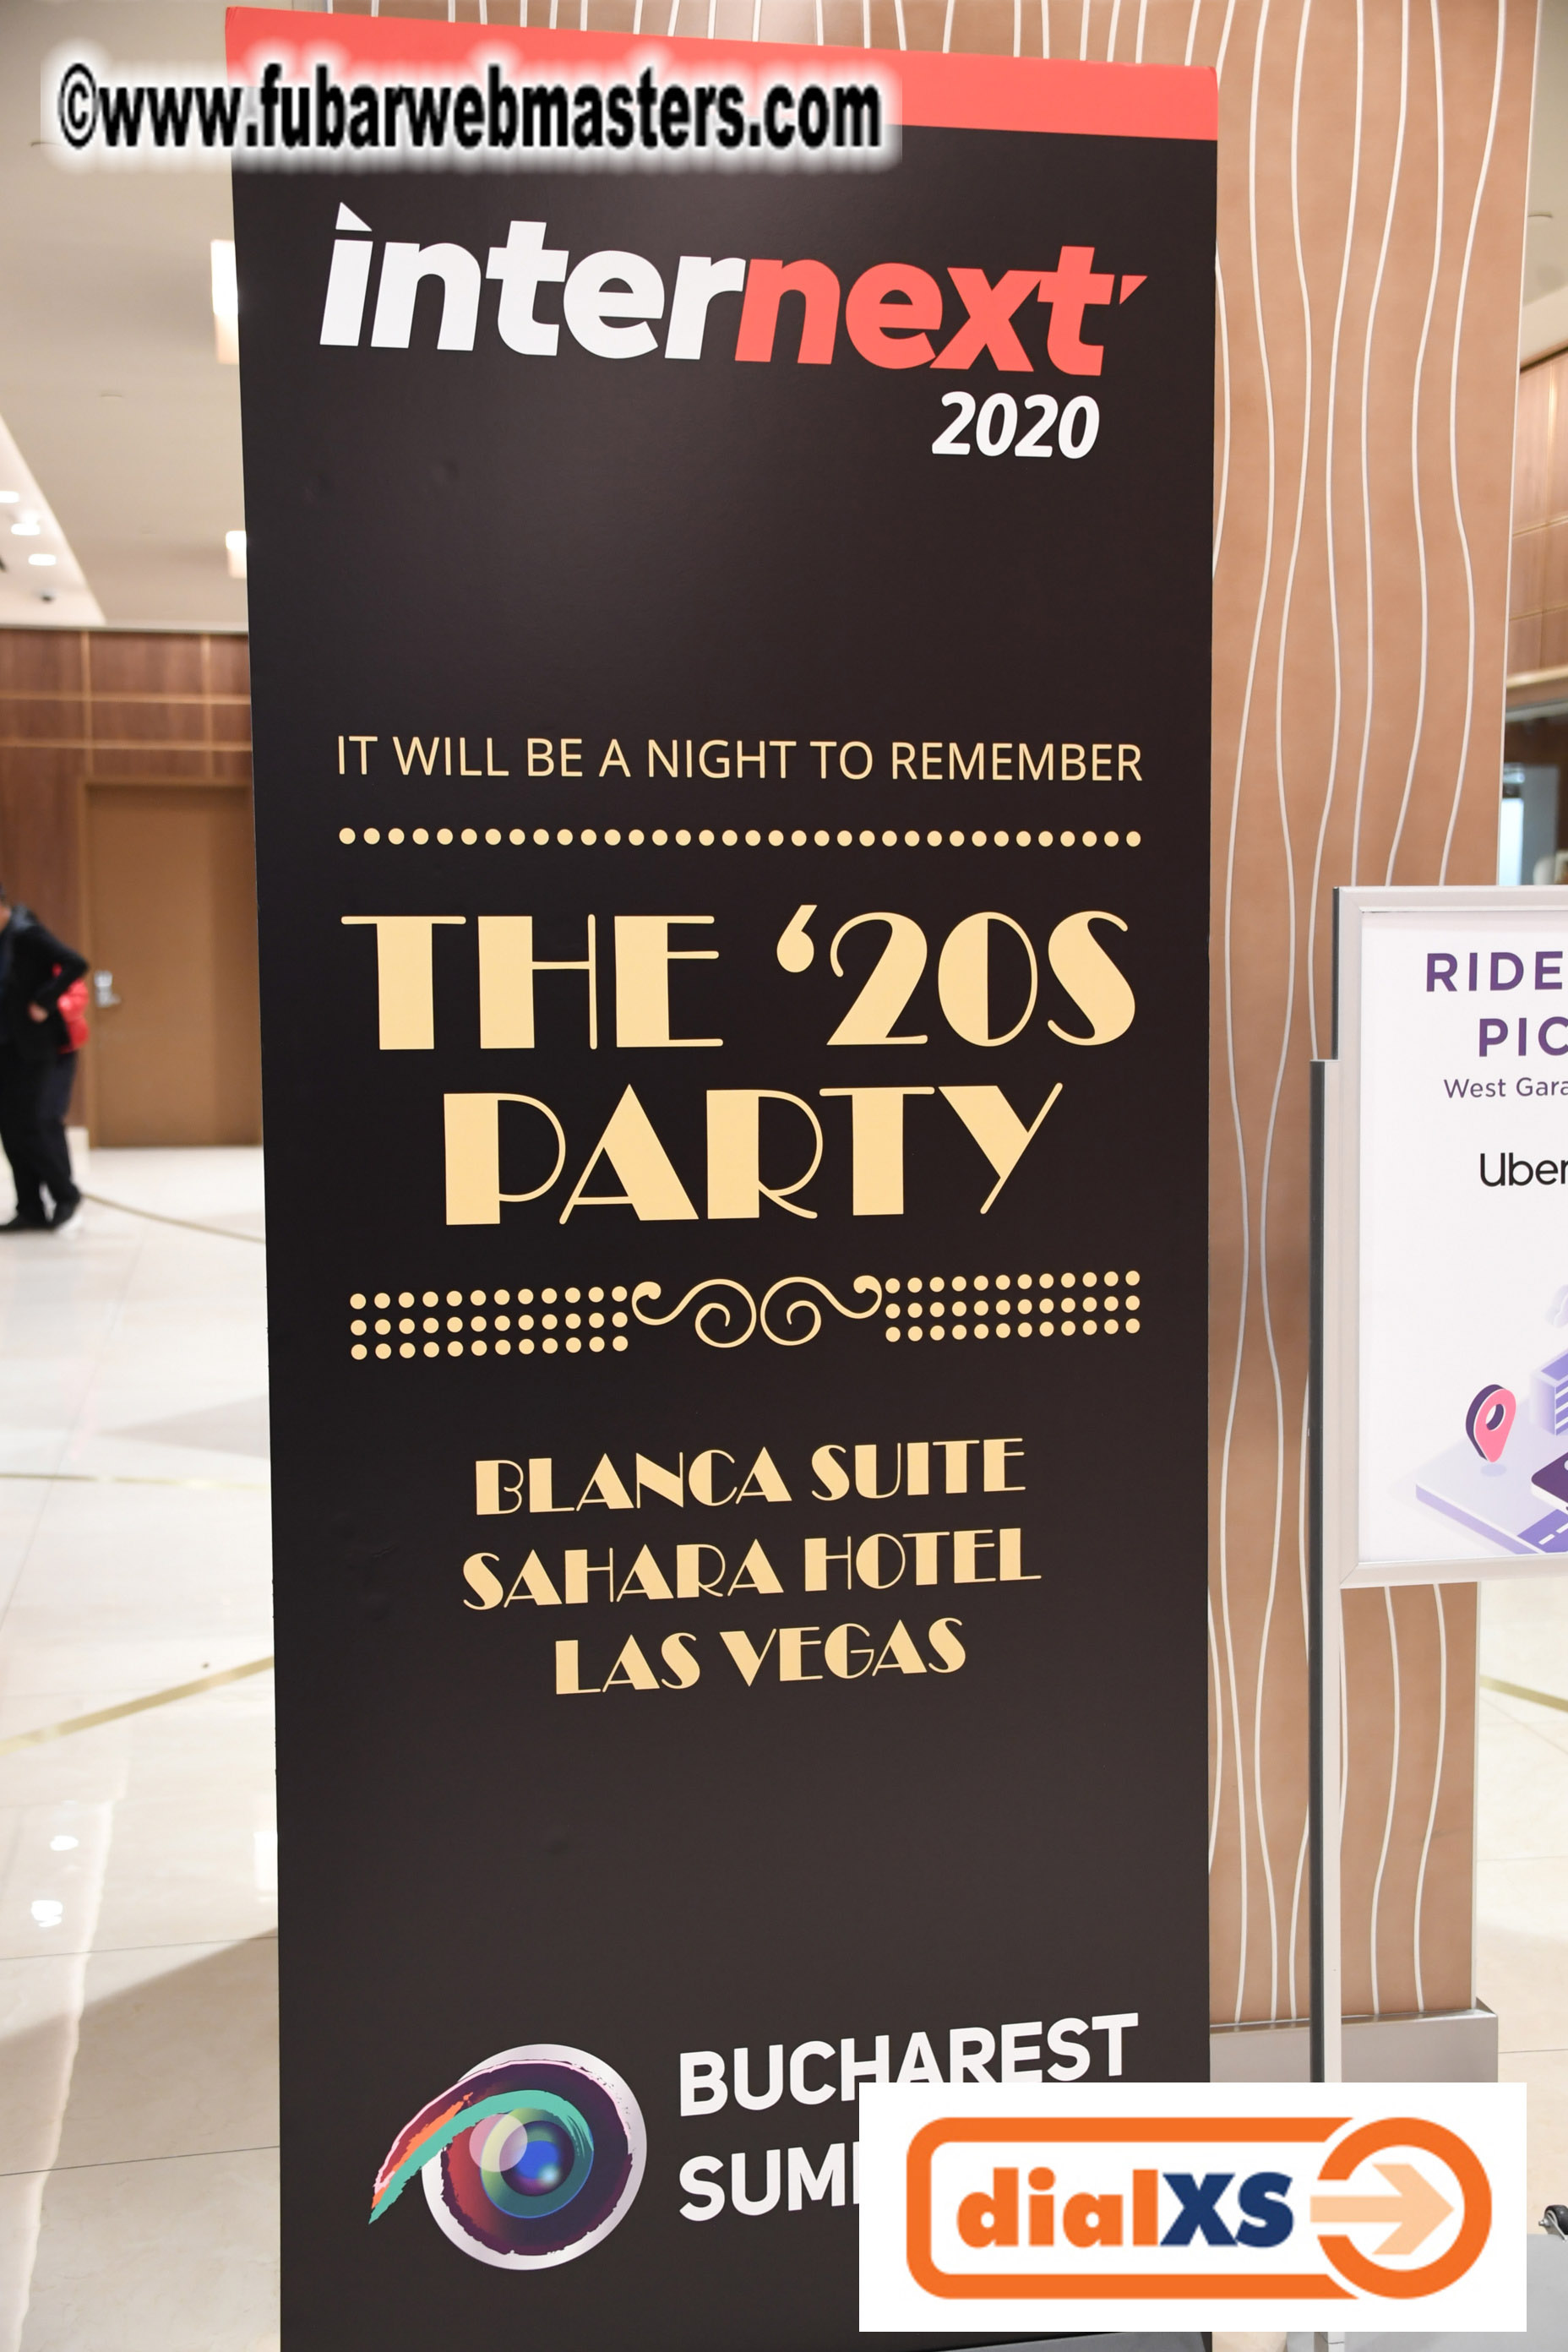 The 20s Party